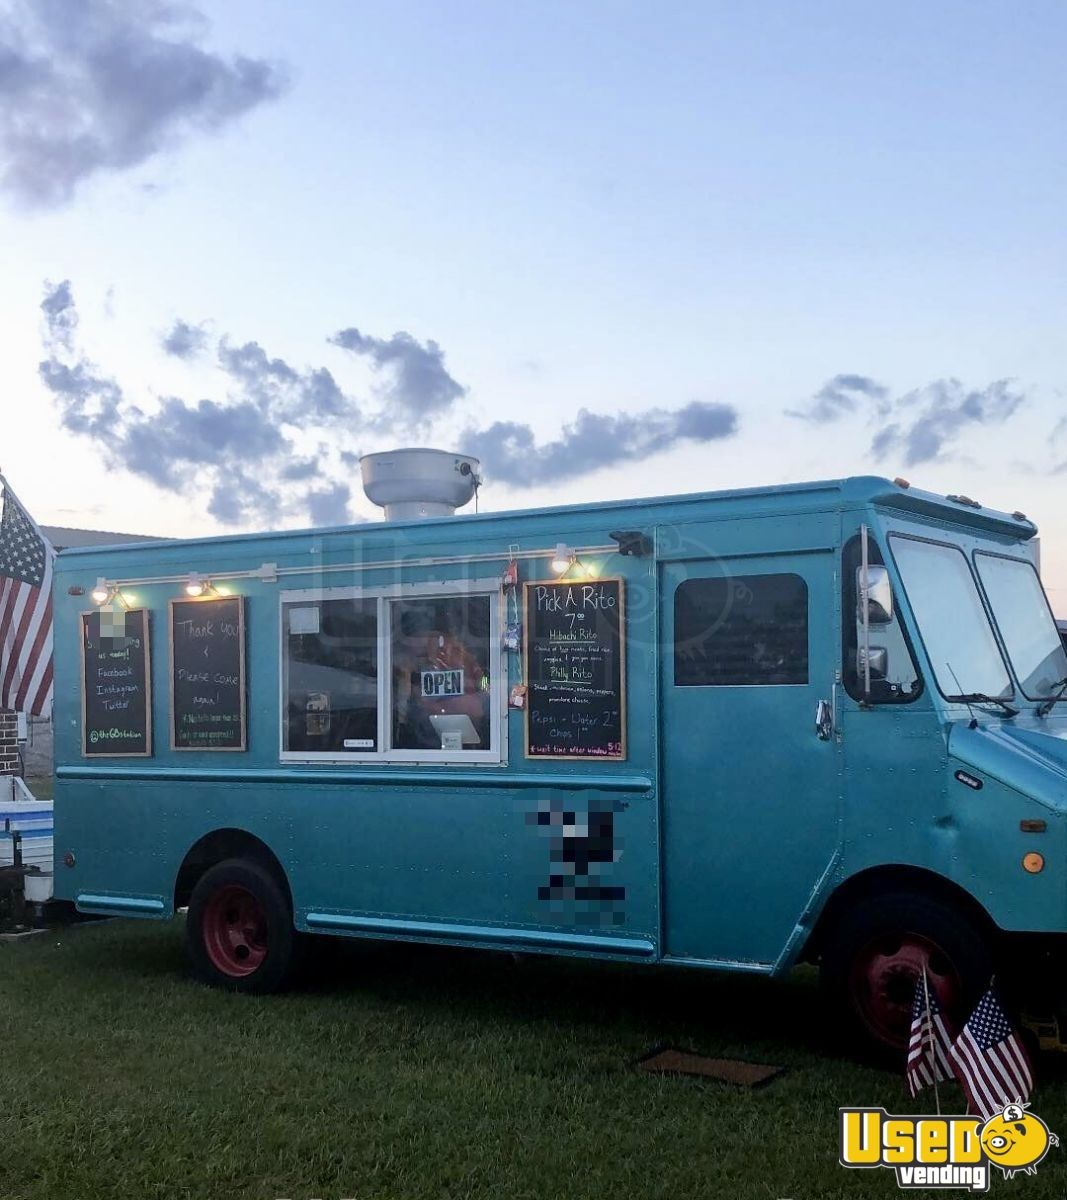 1993 Gmc P3500 All-purpose Food Truck Concession Window Mississippi Gas Engine for Sale - 2